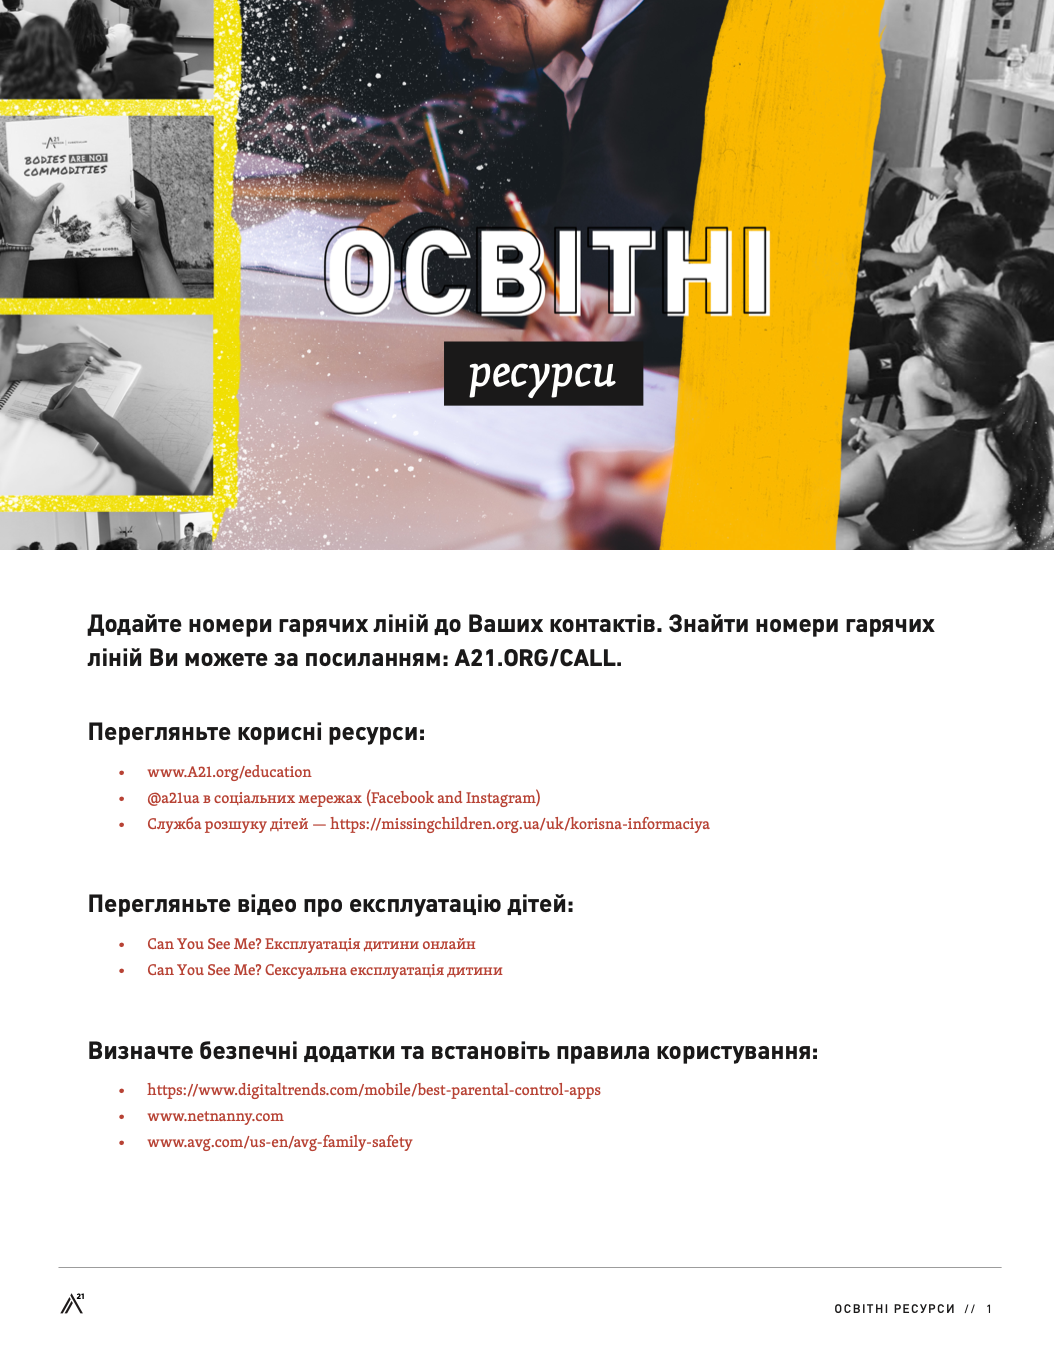 Digital Safety Resource Ukraine